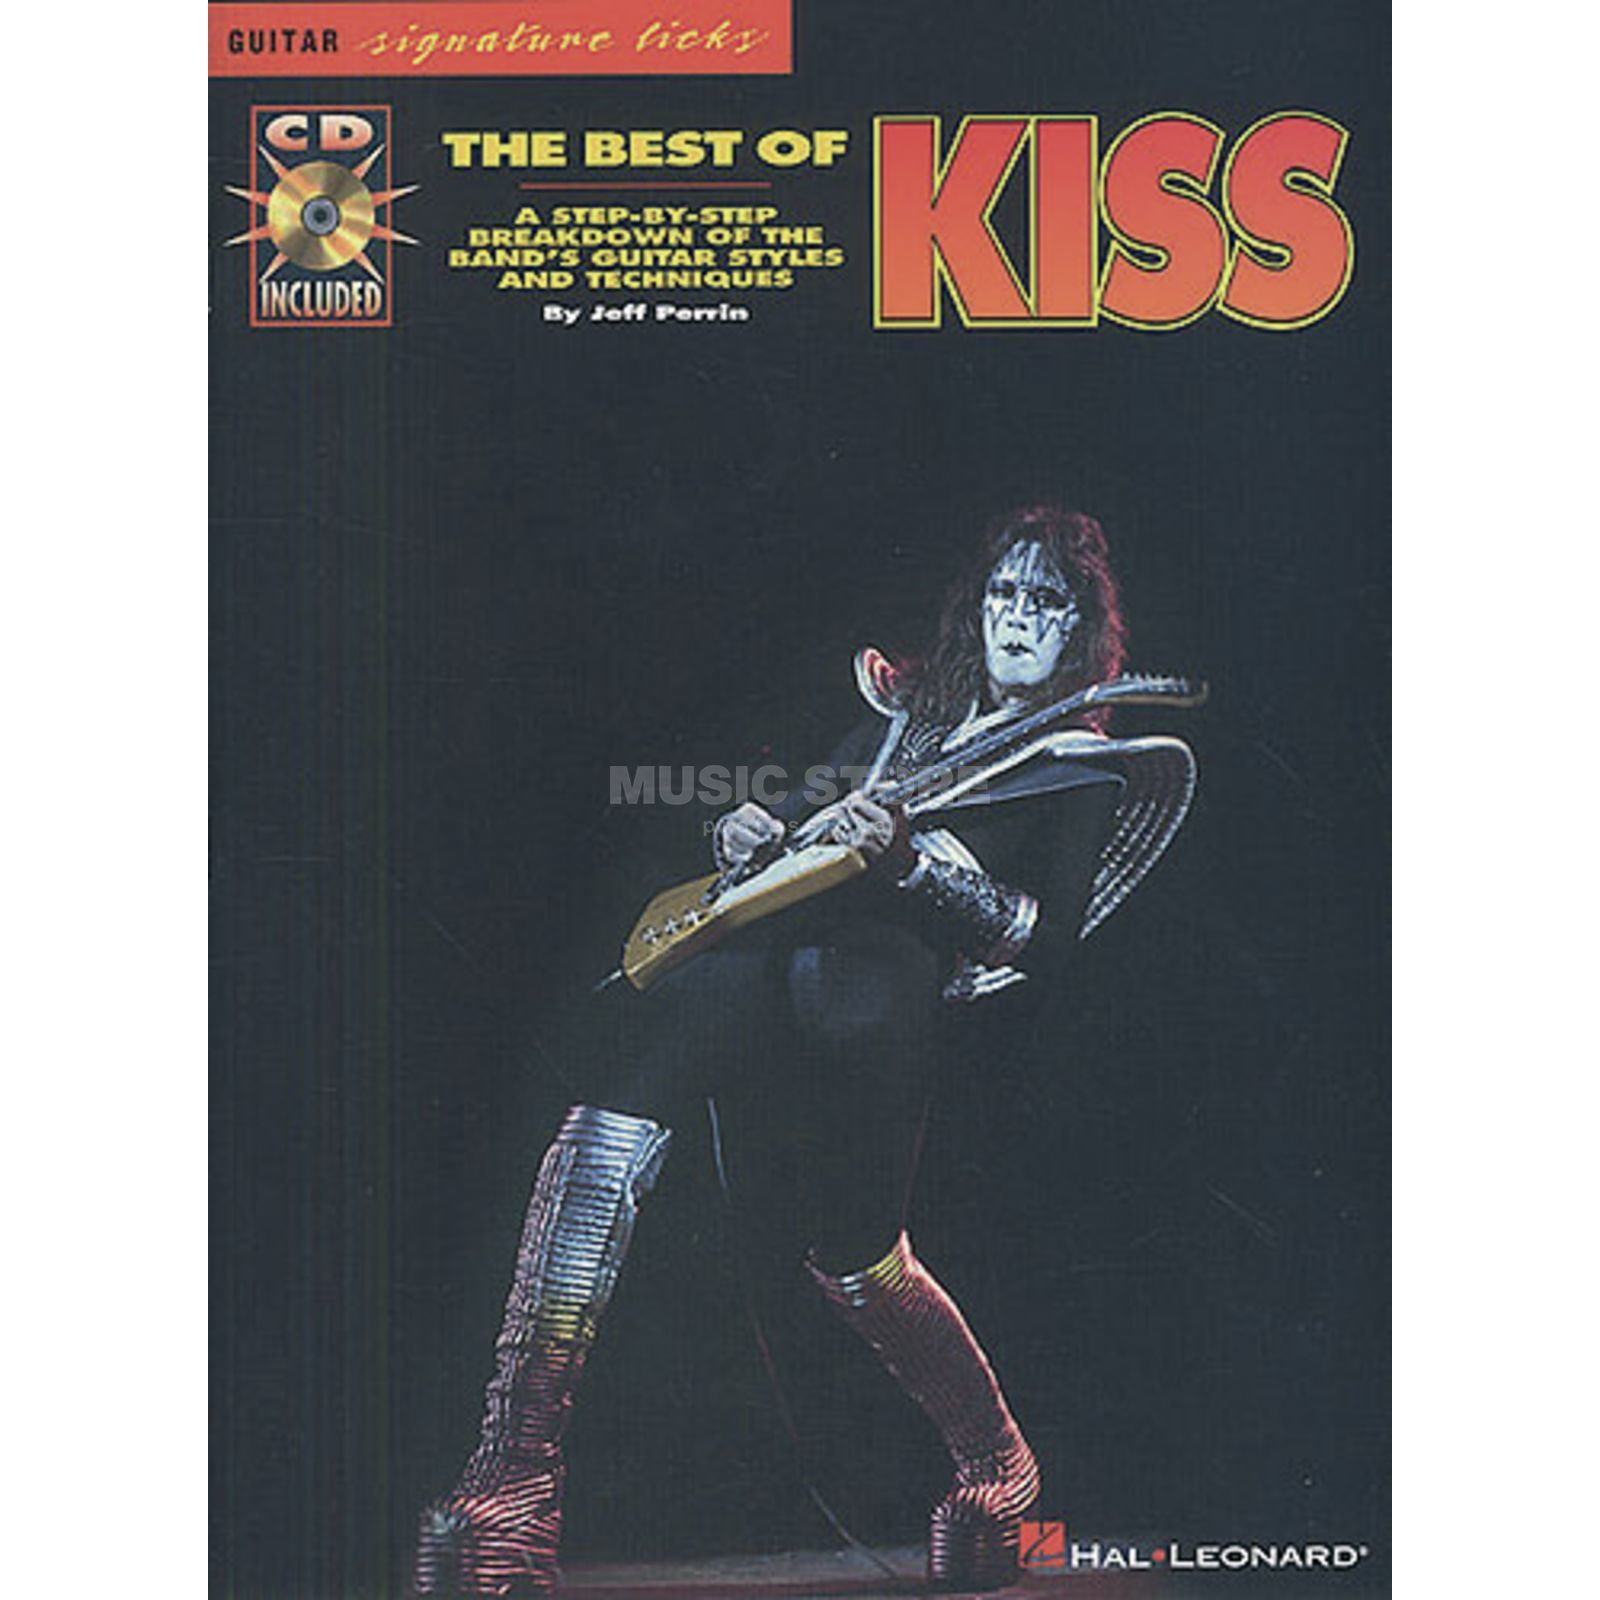 Hal Leonard The Best Of Kiss Produktbillede